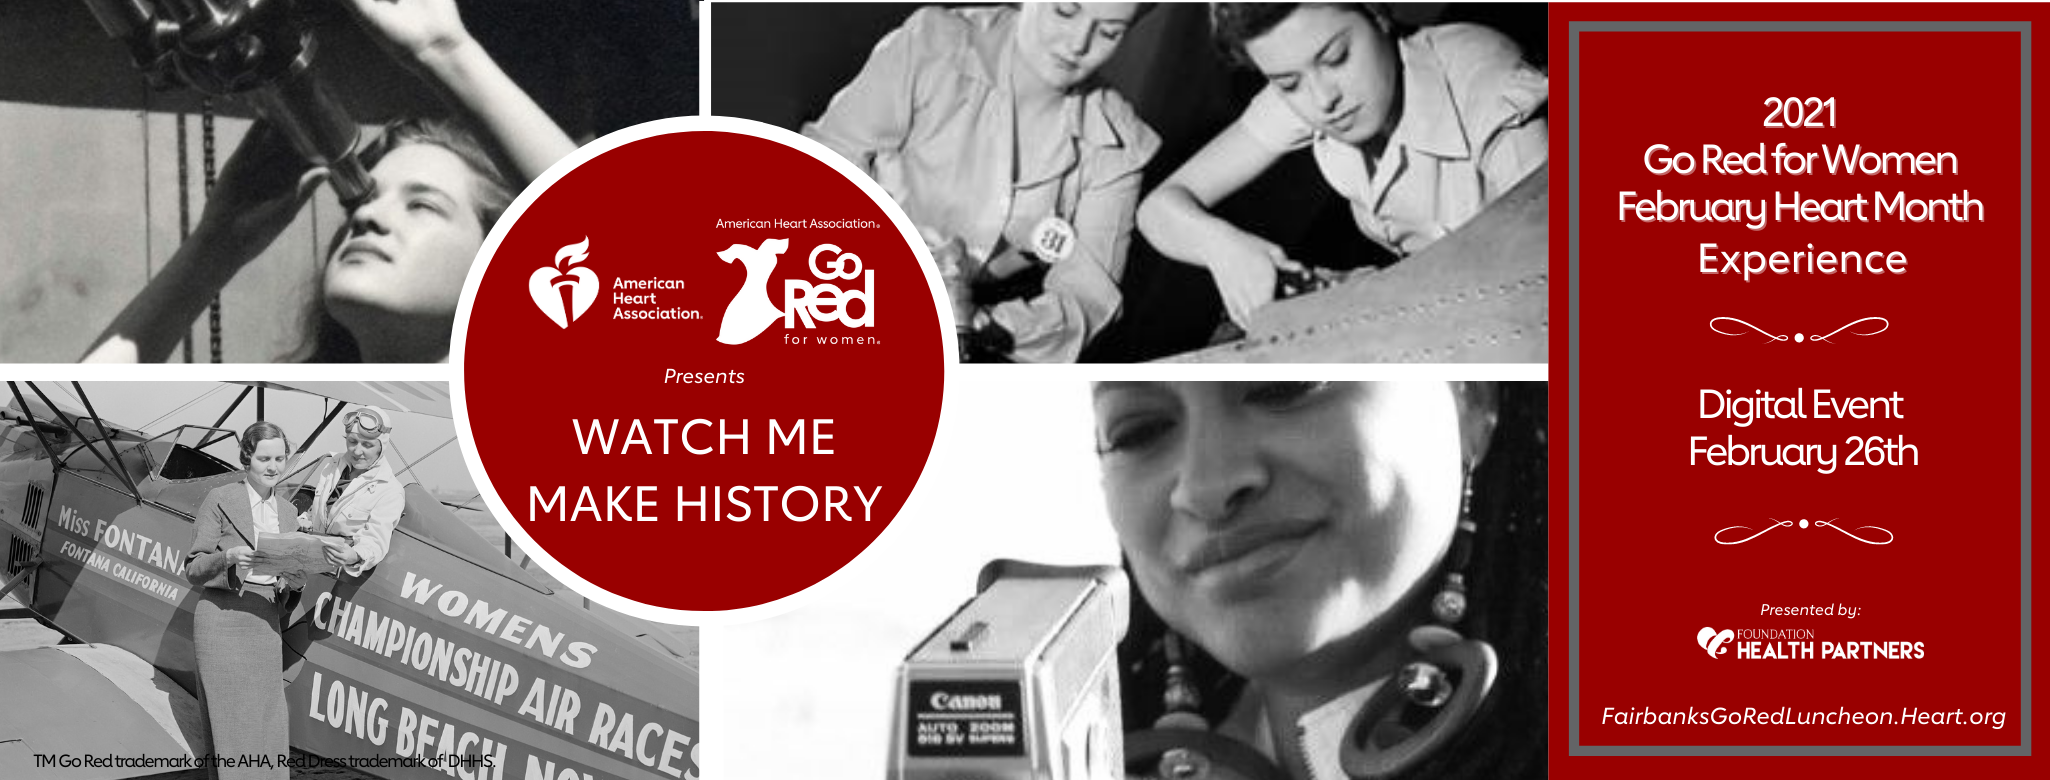 Watch me make history banner photo